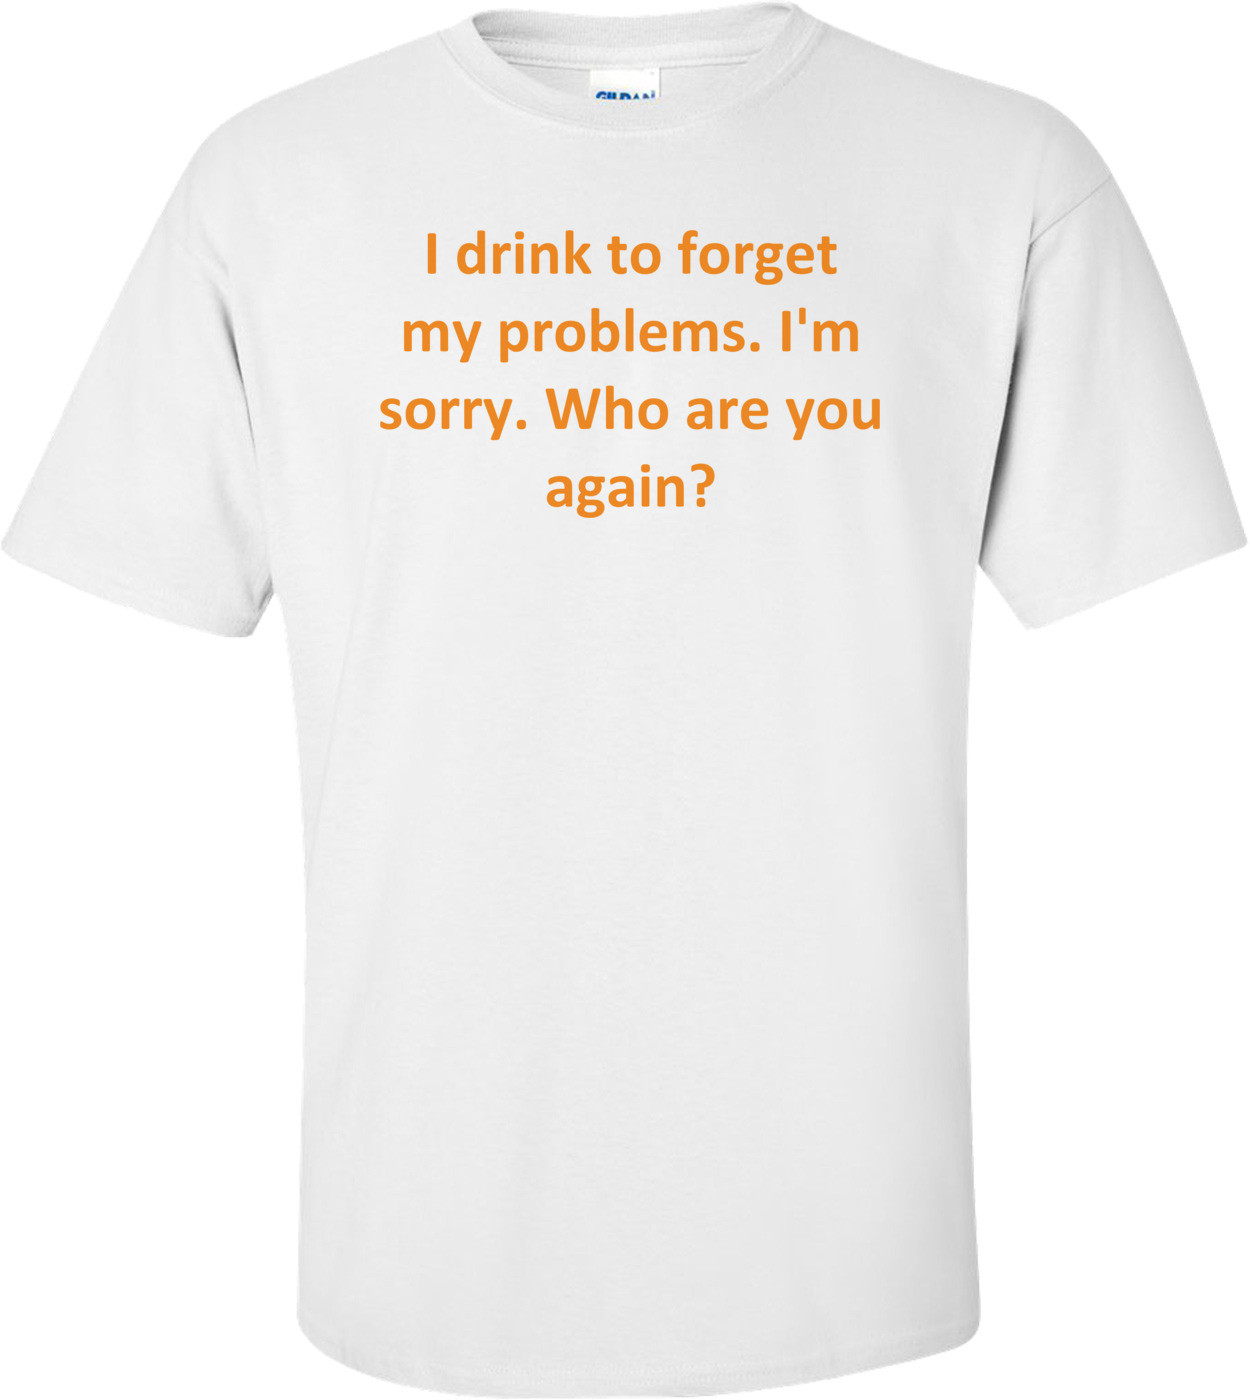 I drink to forget my problems. I'm sorry. Who are you again? Shirt